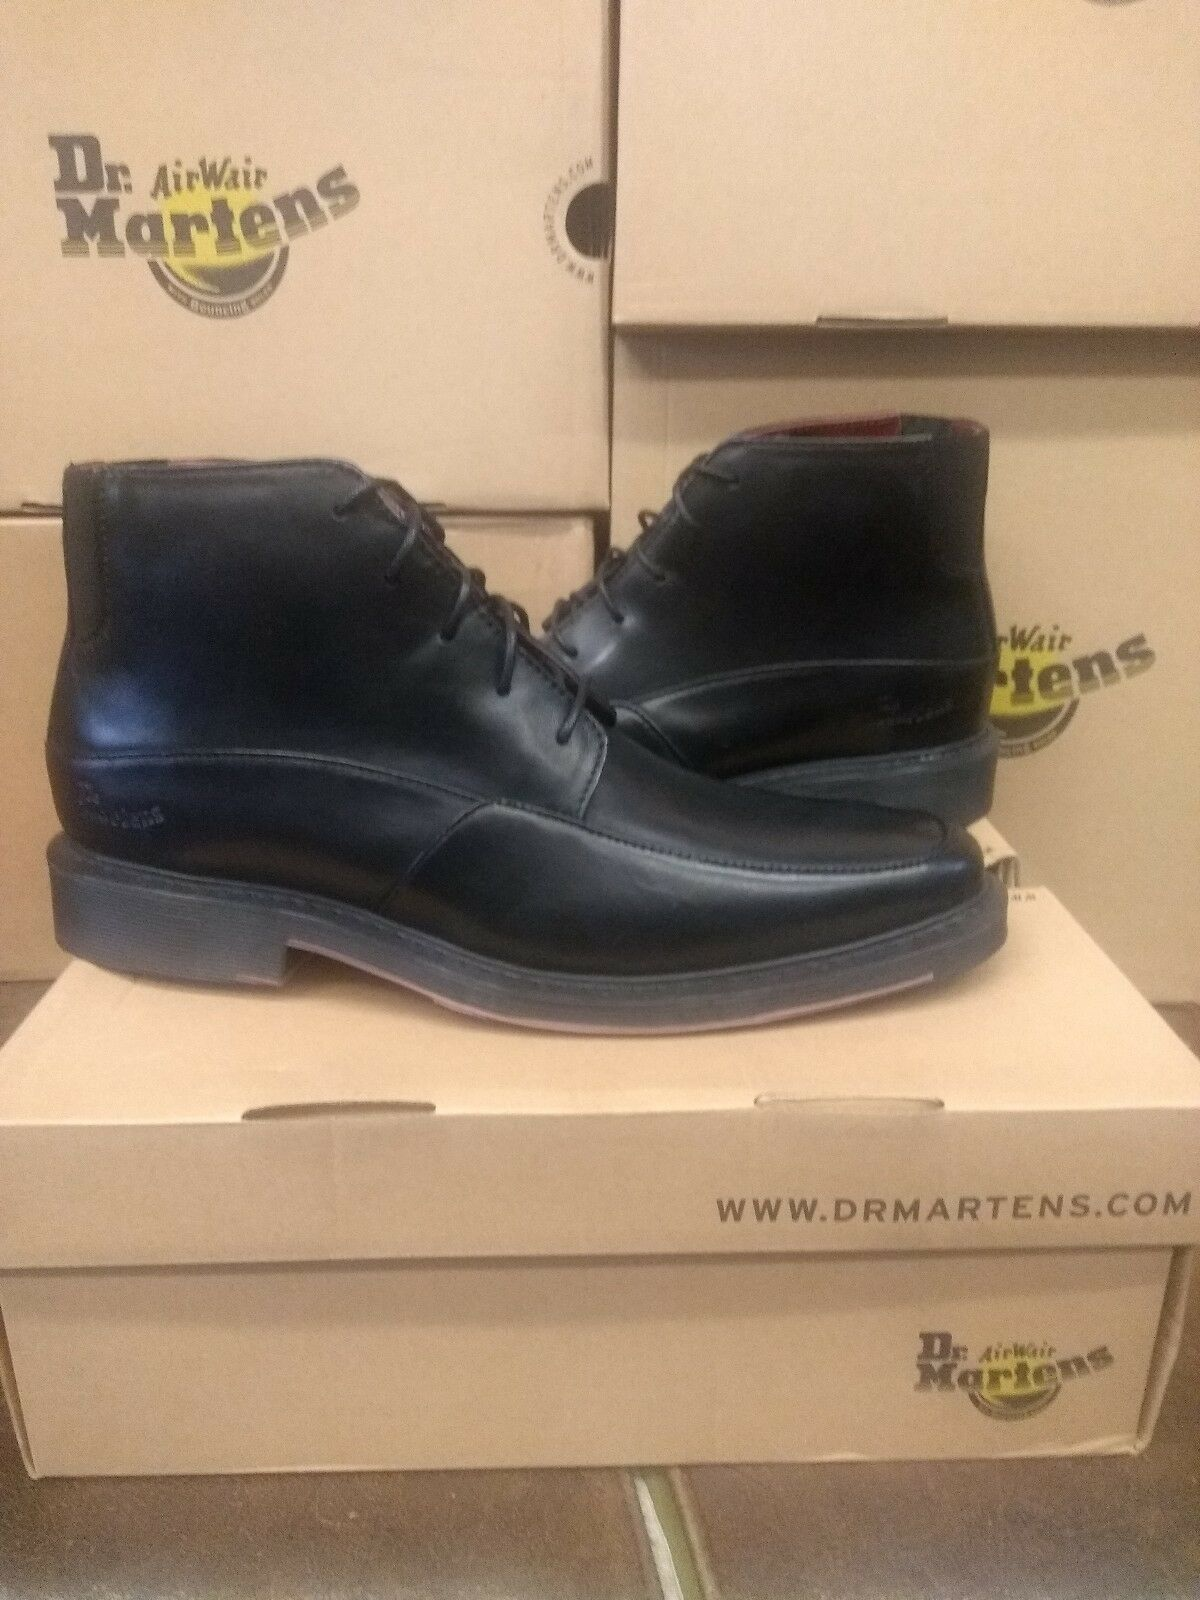 DR MARTENS IC33 MENS LACE UP BOOT SIZE 7